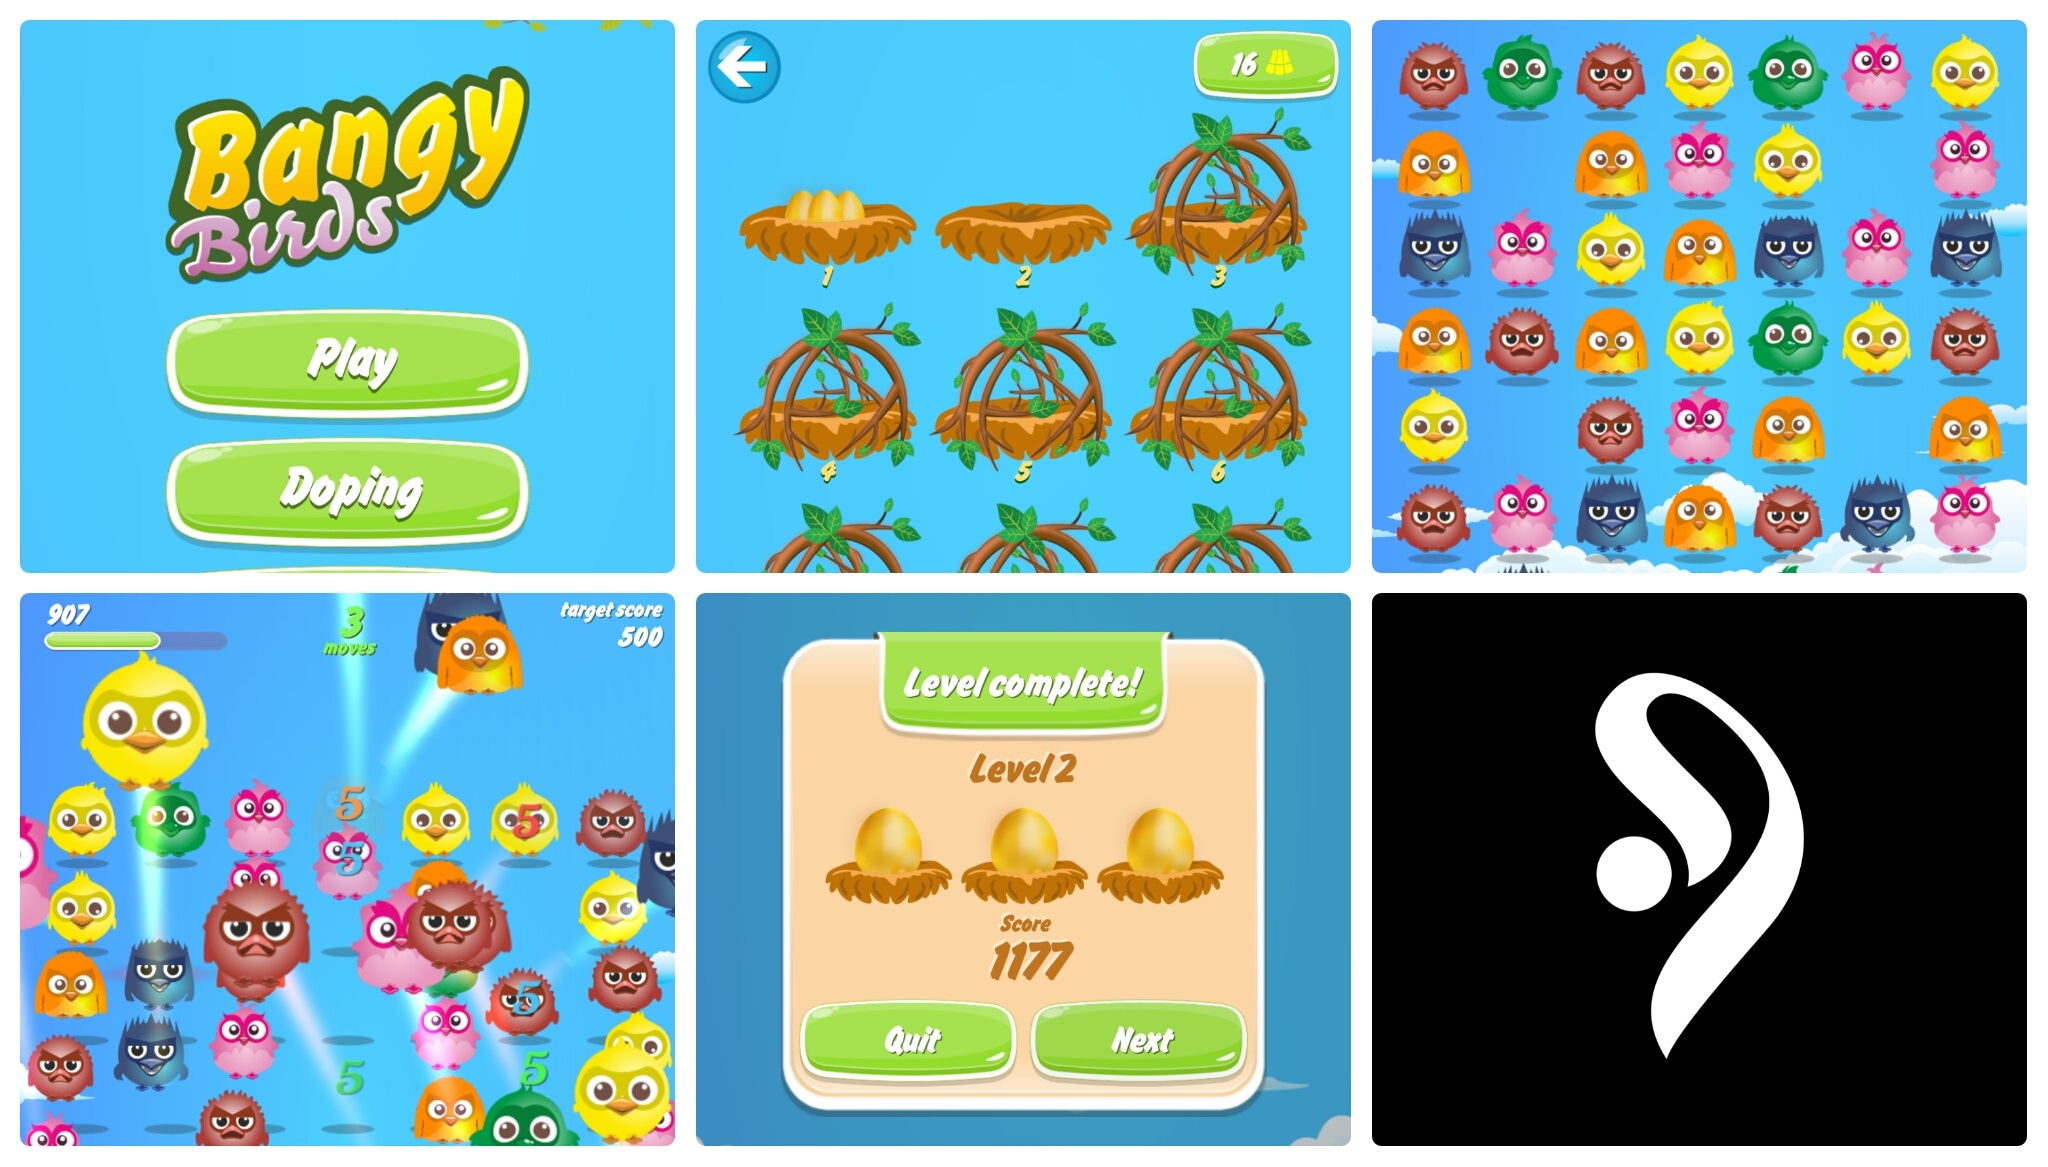 Bangy Birds - Match 3 - Mobile Game - Android